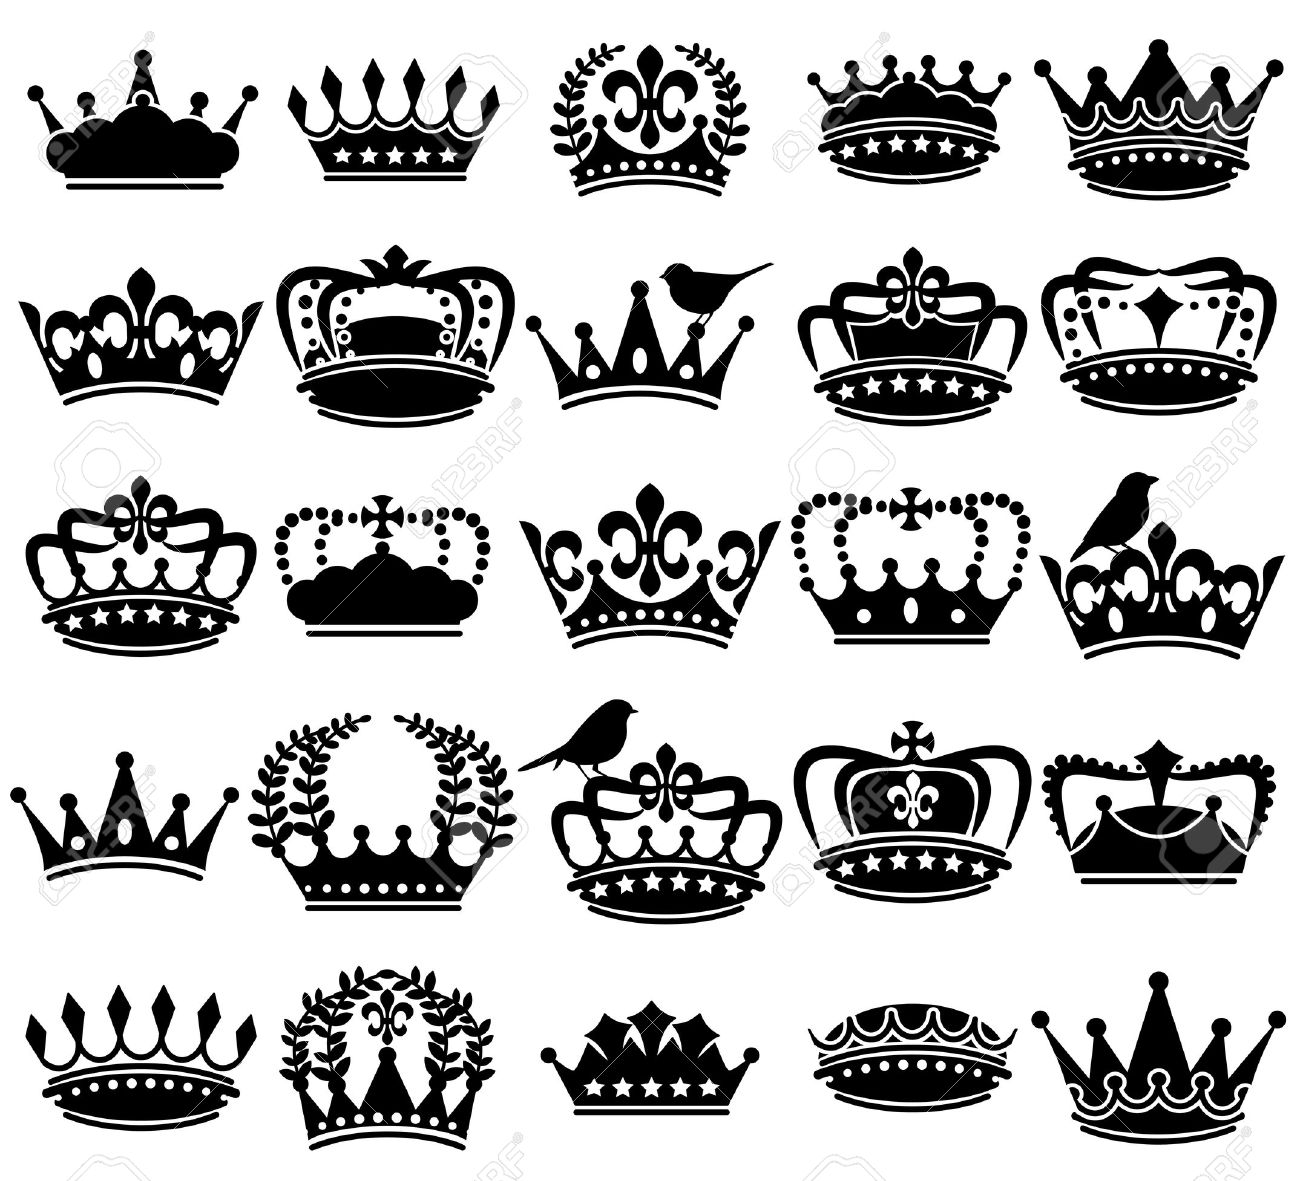 Vector Collection of Vintage Style Crown Silhouettes - 37890740